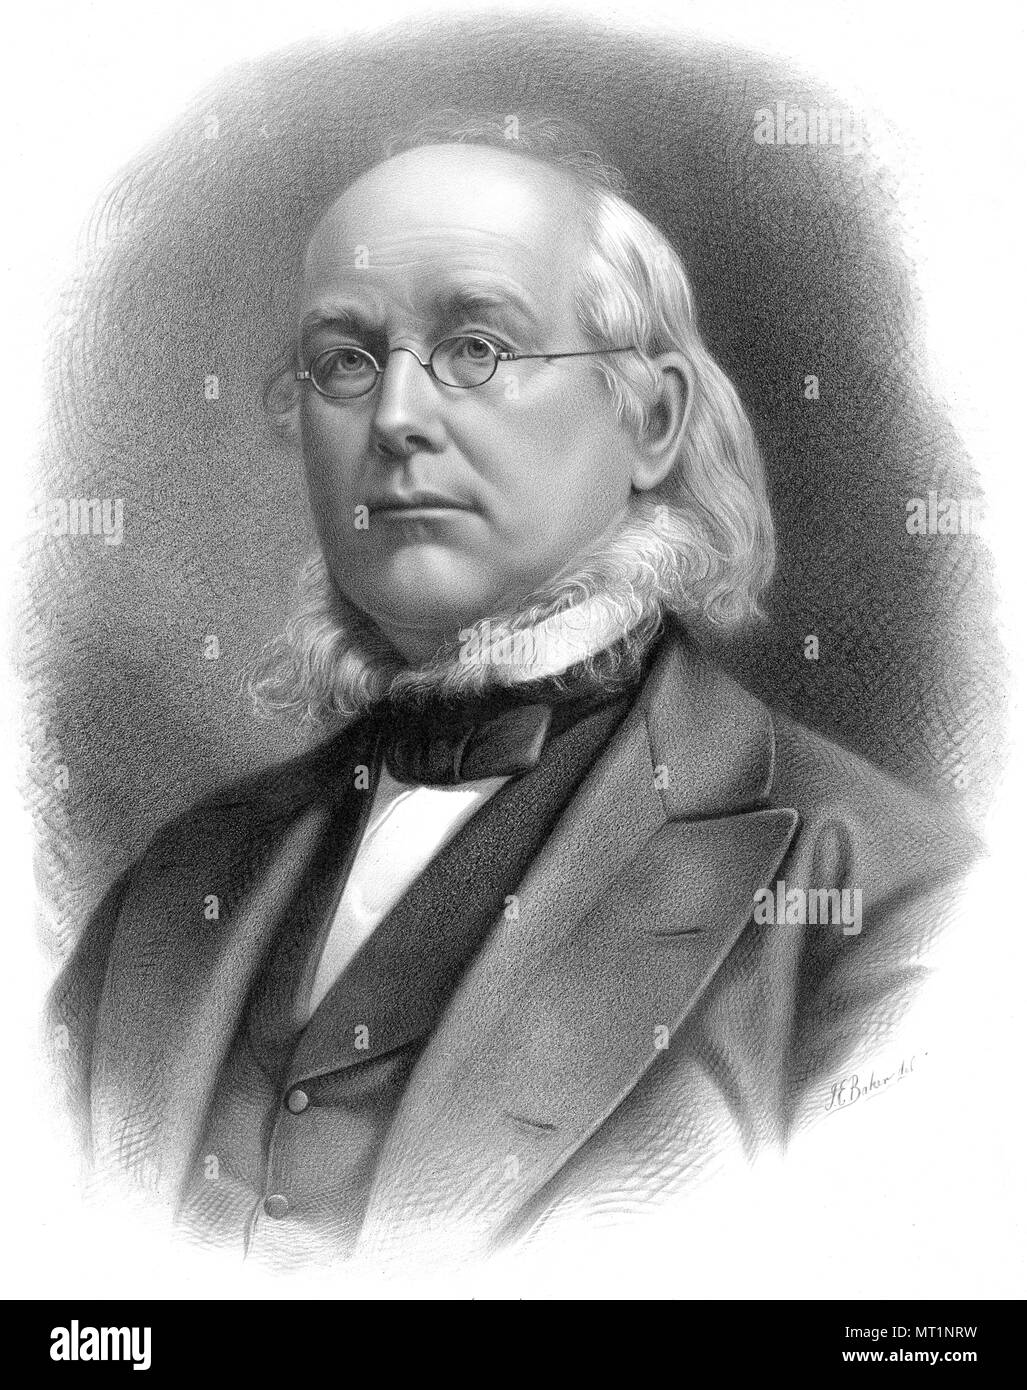 Horace Greeley (1811 – 1872) founder and editor of the New-York Tribune - Stock Image